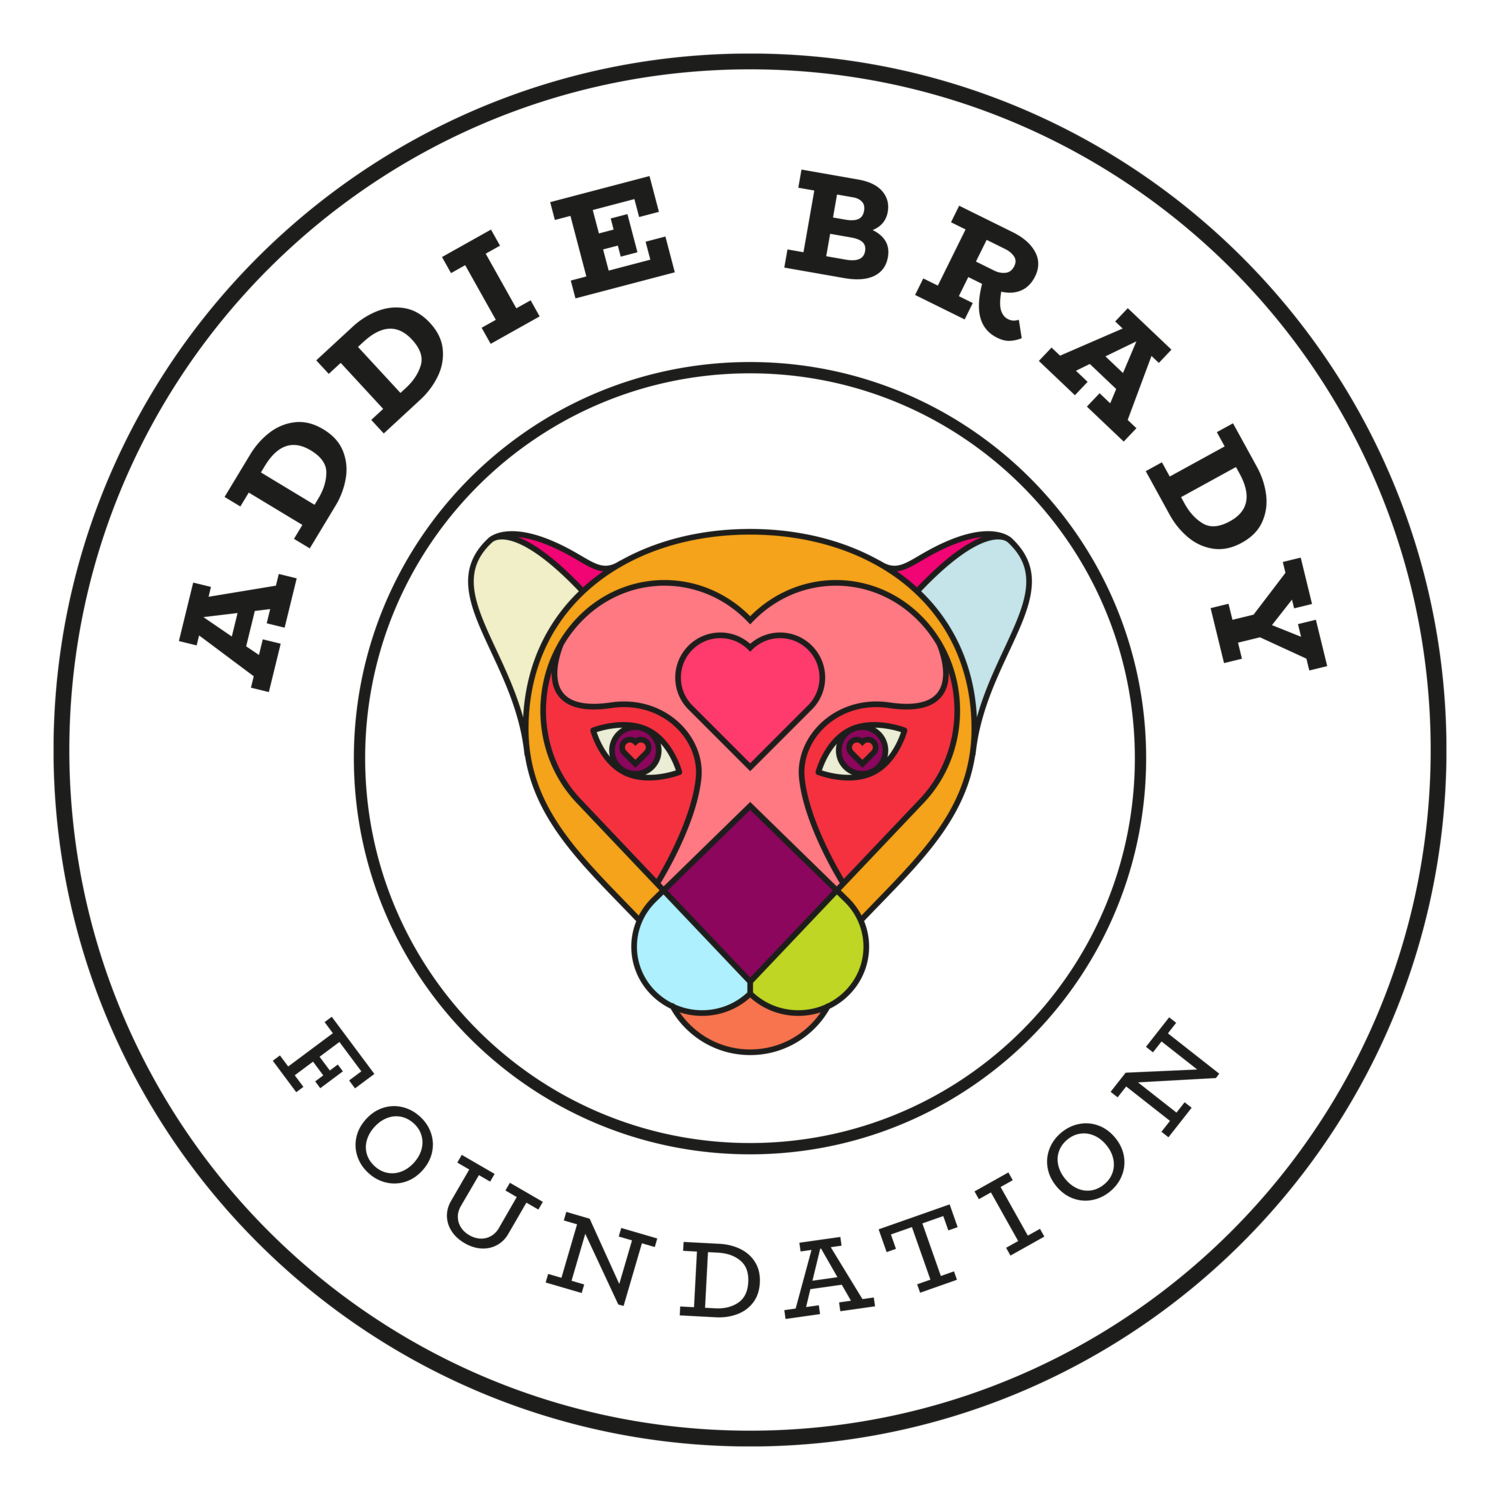 The Addie Brady Foundation - A cause close to our hearts